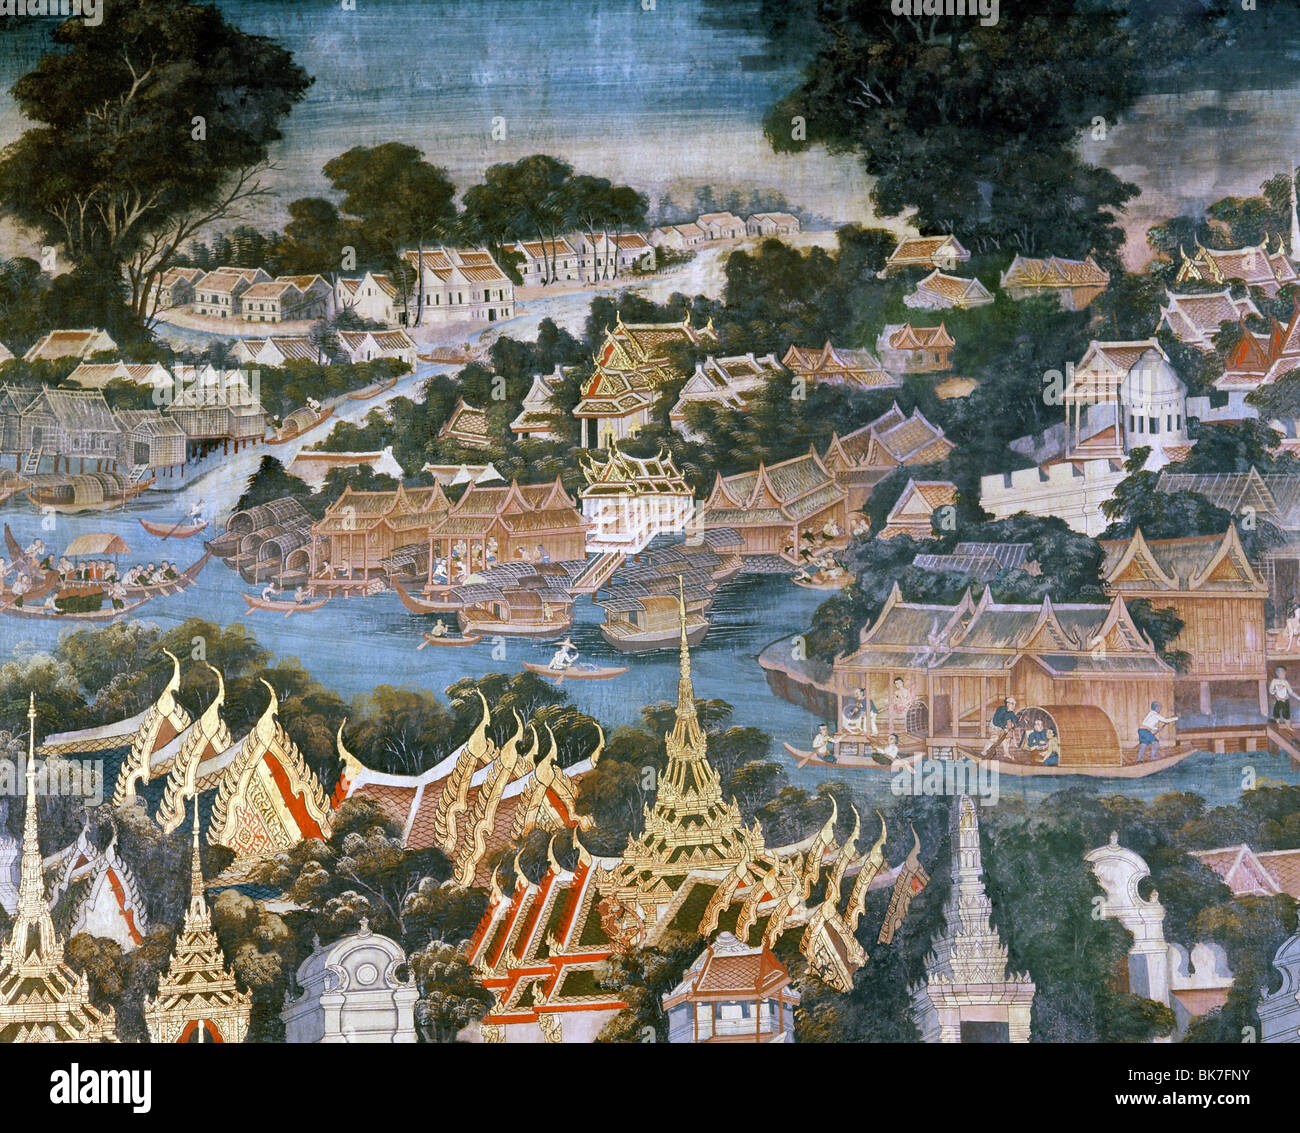 Detail of mural dating from 1864 showing Bangkok with the Chaophraya River and the Grand Palace roofs in the foreground - Stock Image